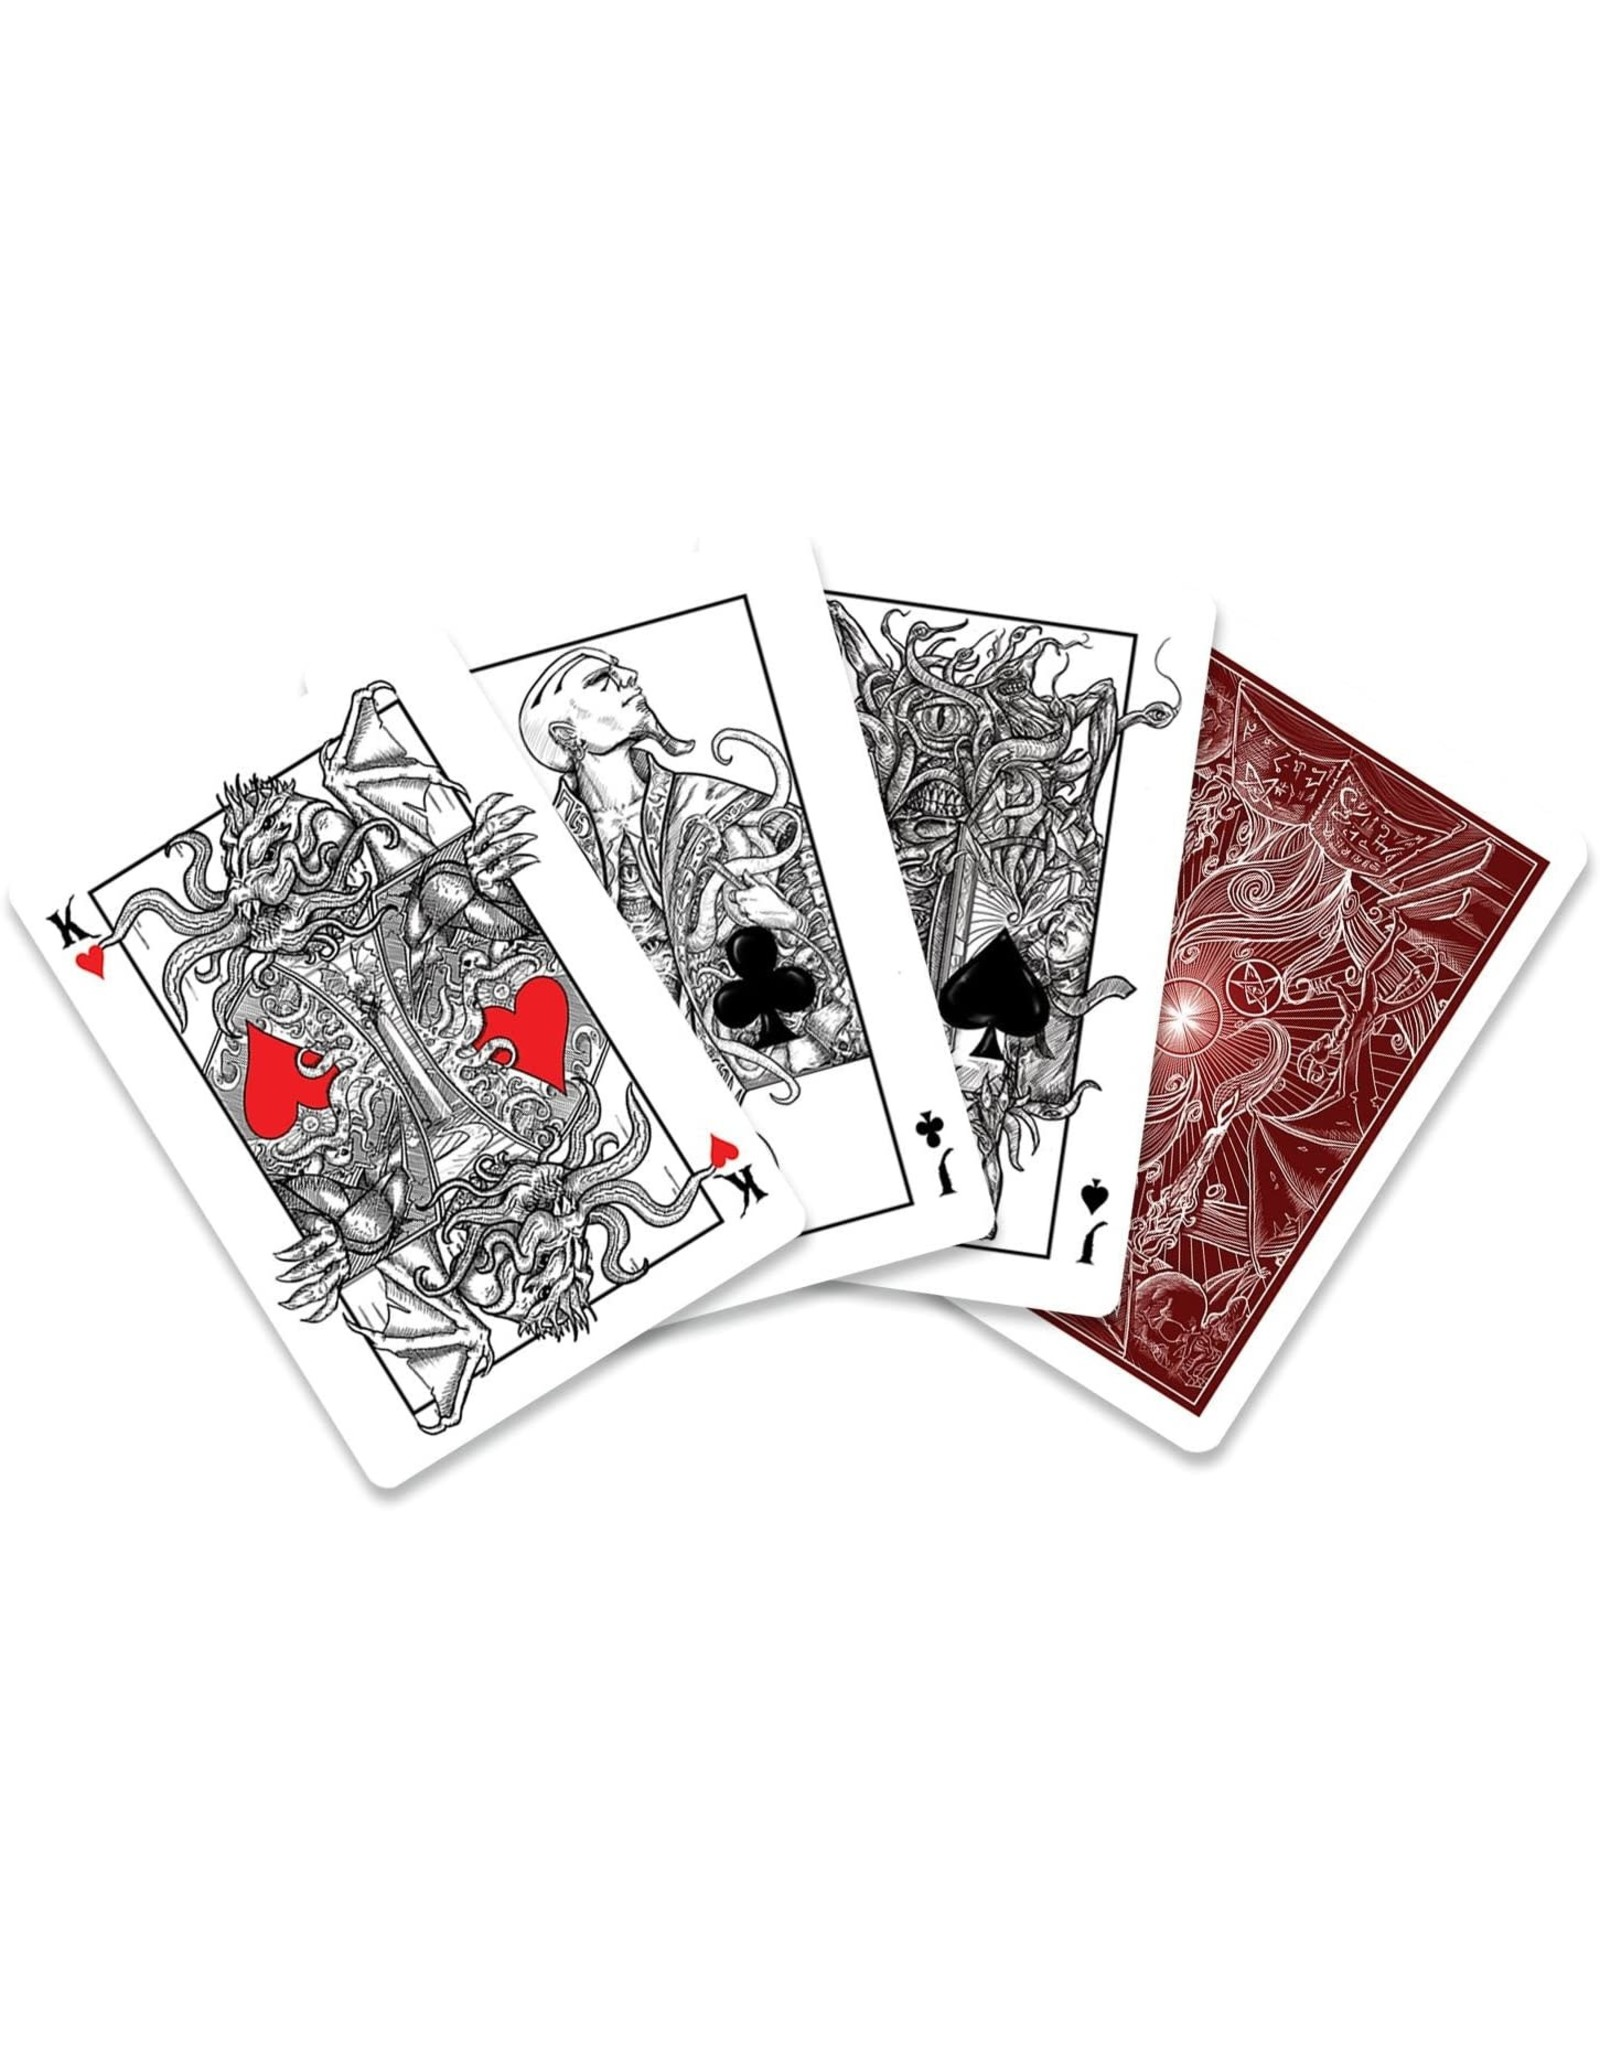 Albino Dragon Playing Cards: Call of Cthulhu Playing Cards